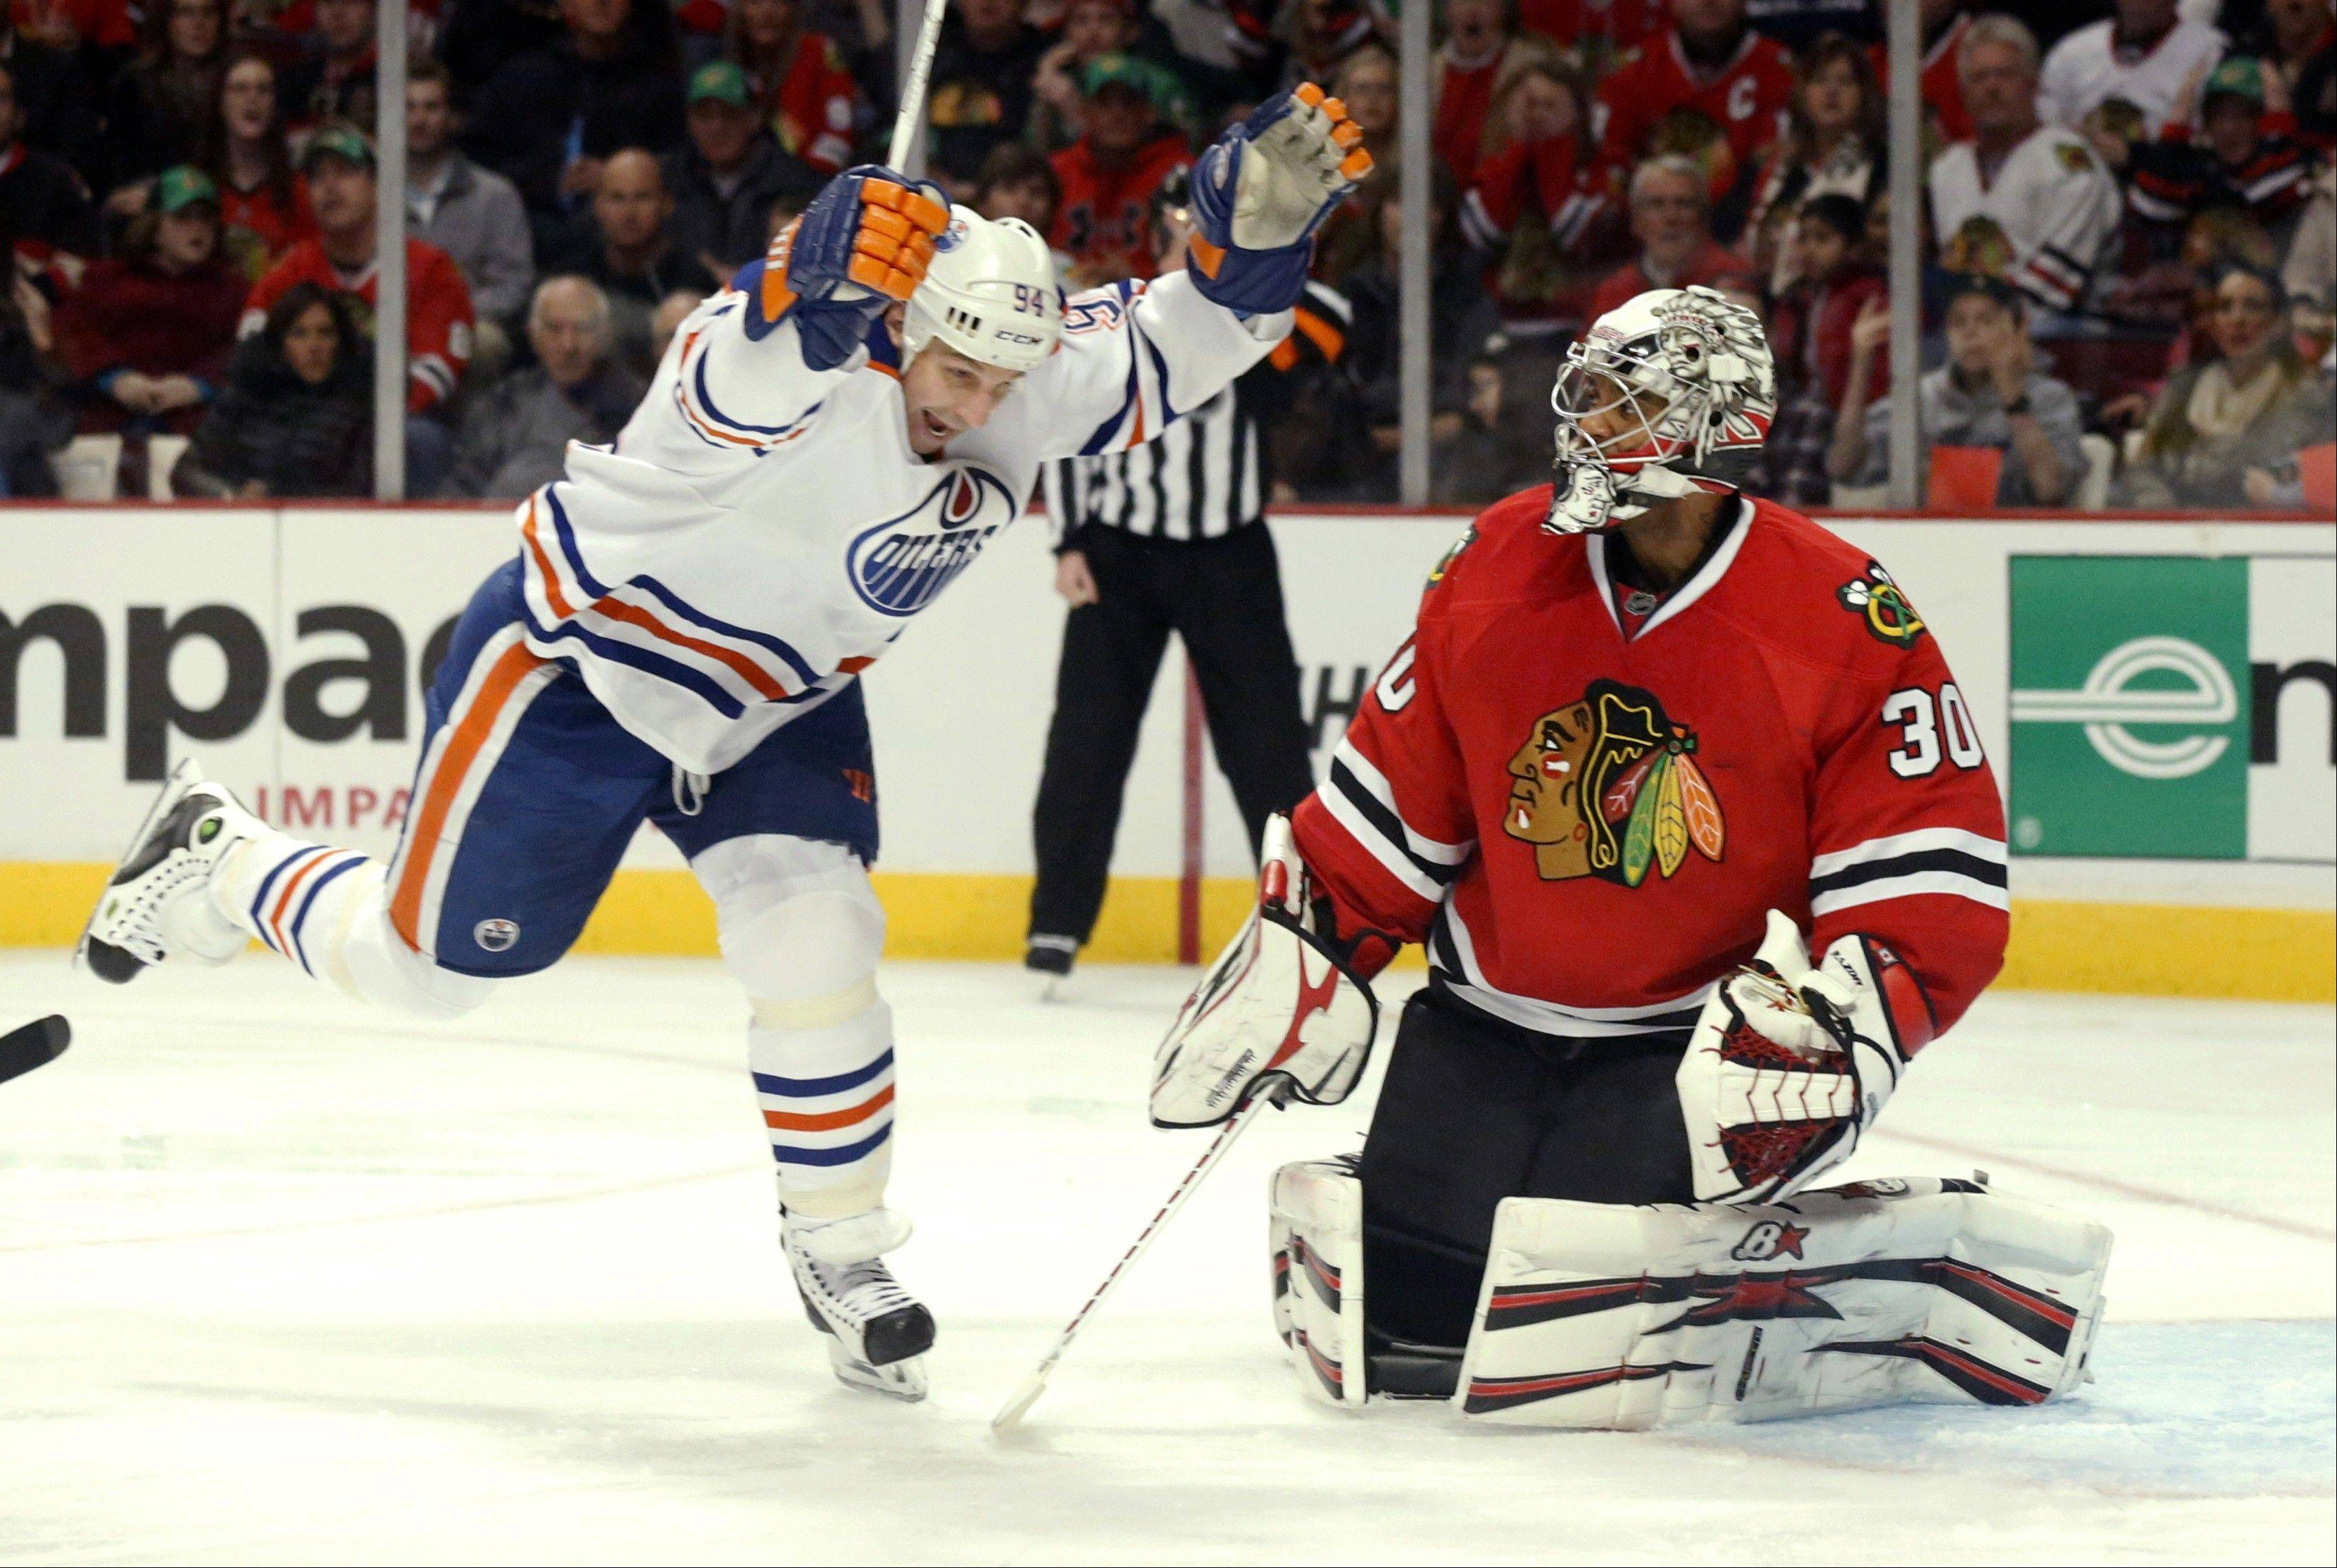 Blackhawks goalie Ray Emery watches as Oilers left wing Ryan Smyth celebrates teammate Mike Brown's goal Sunday night during the first period, when Edmonton took a 4-0 lead.